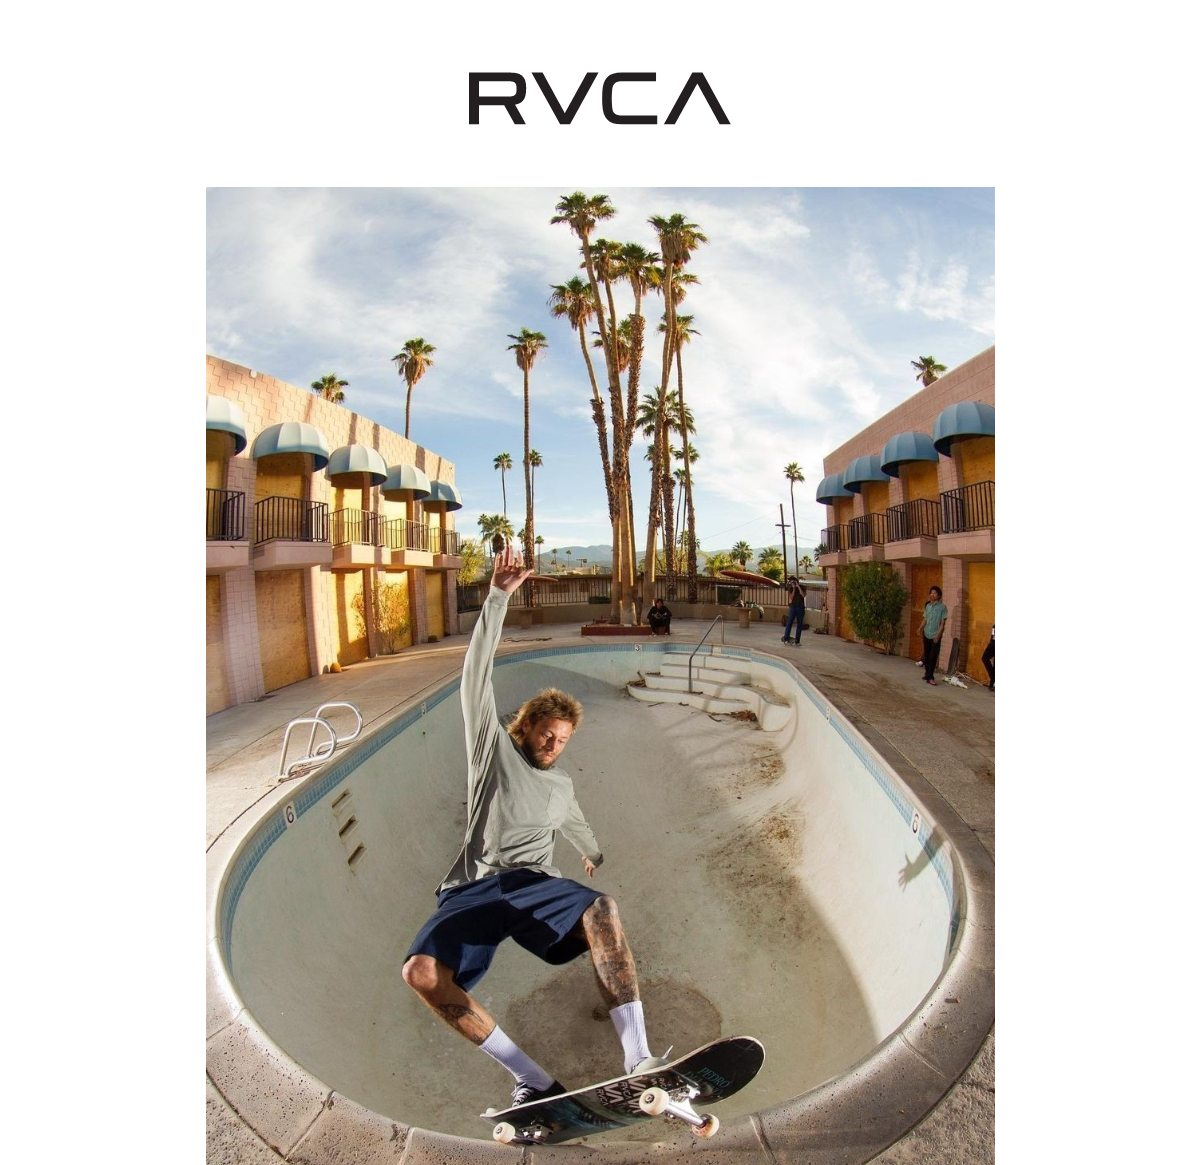 RVCA - New in tees and hoodies